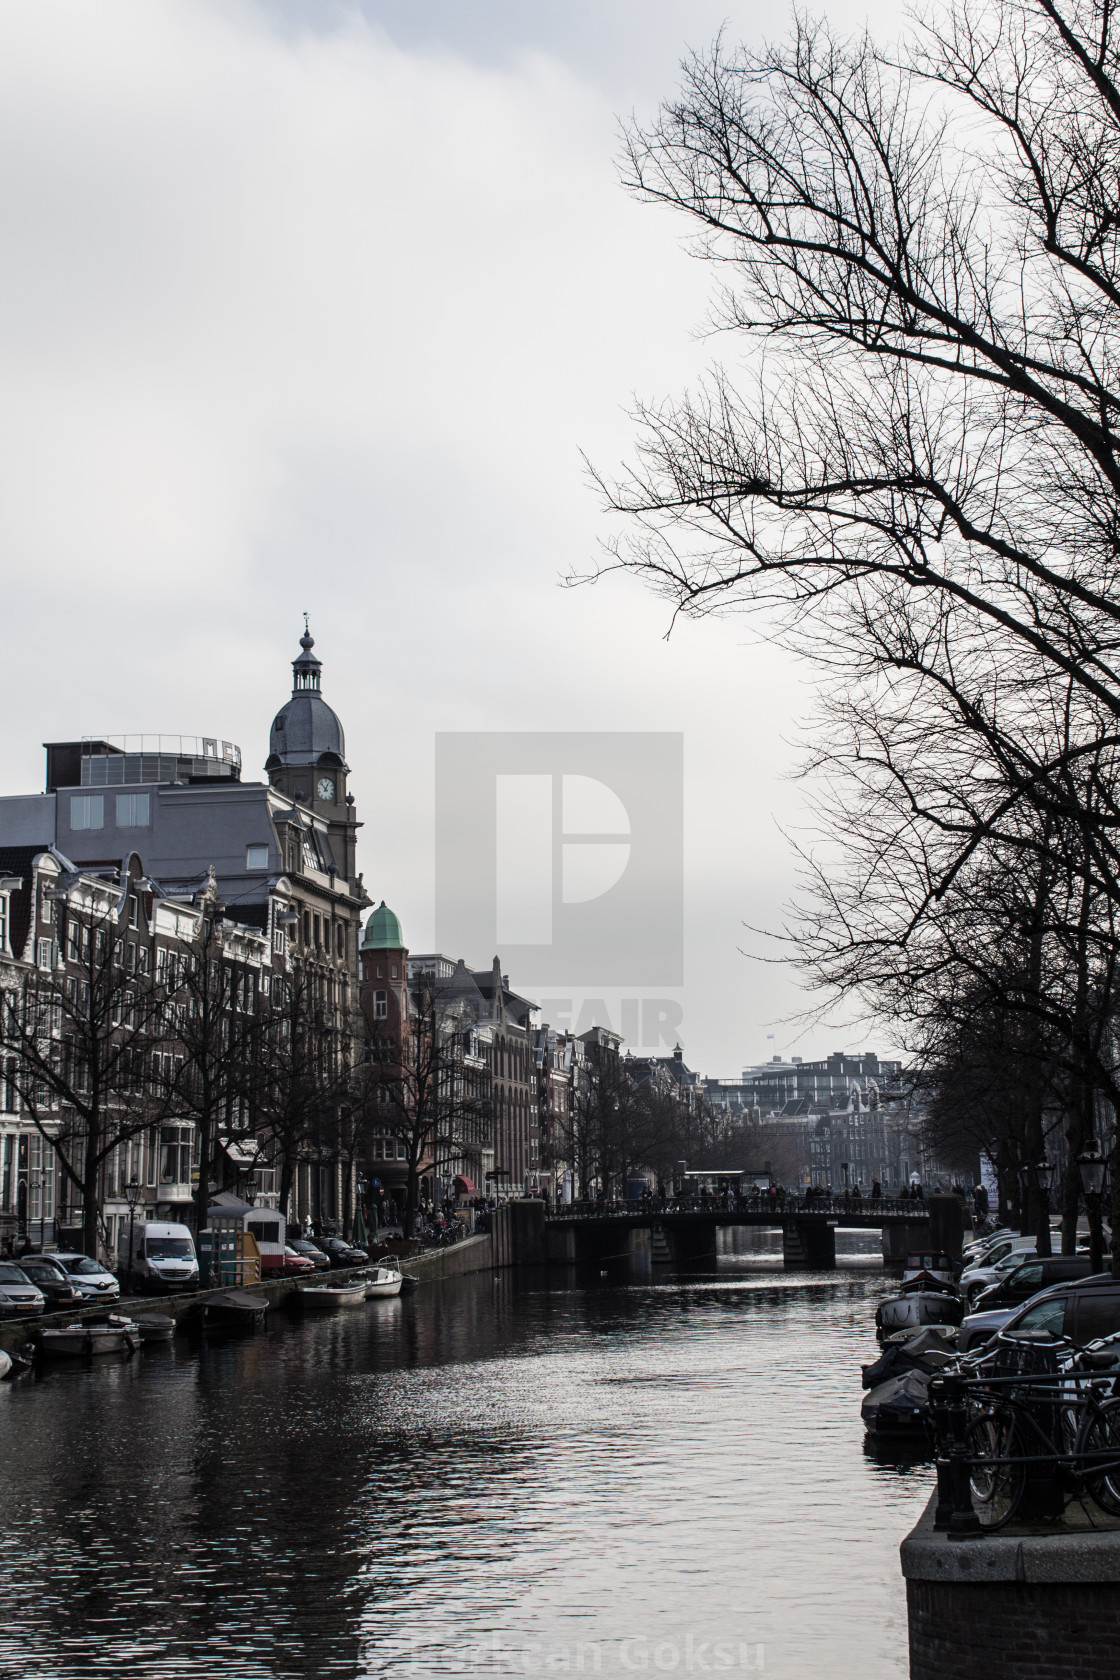 """amsterdam in the netherlands"" stock image"